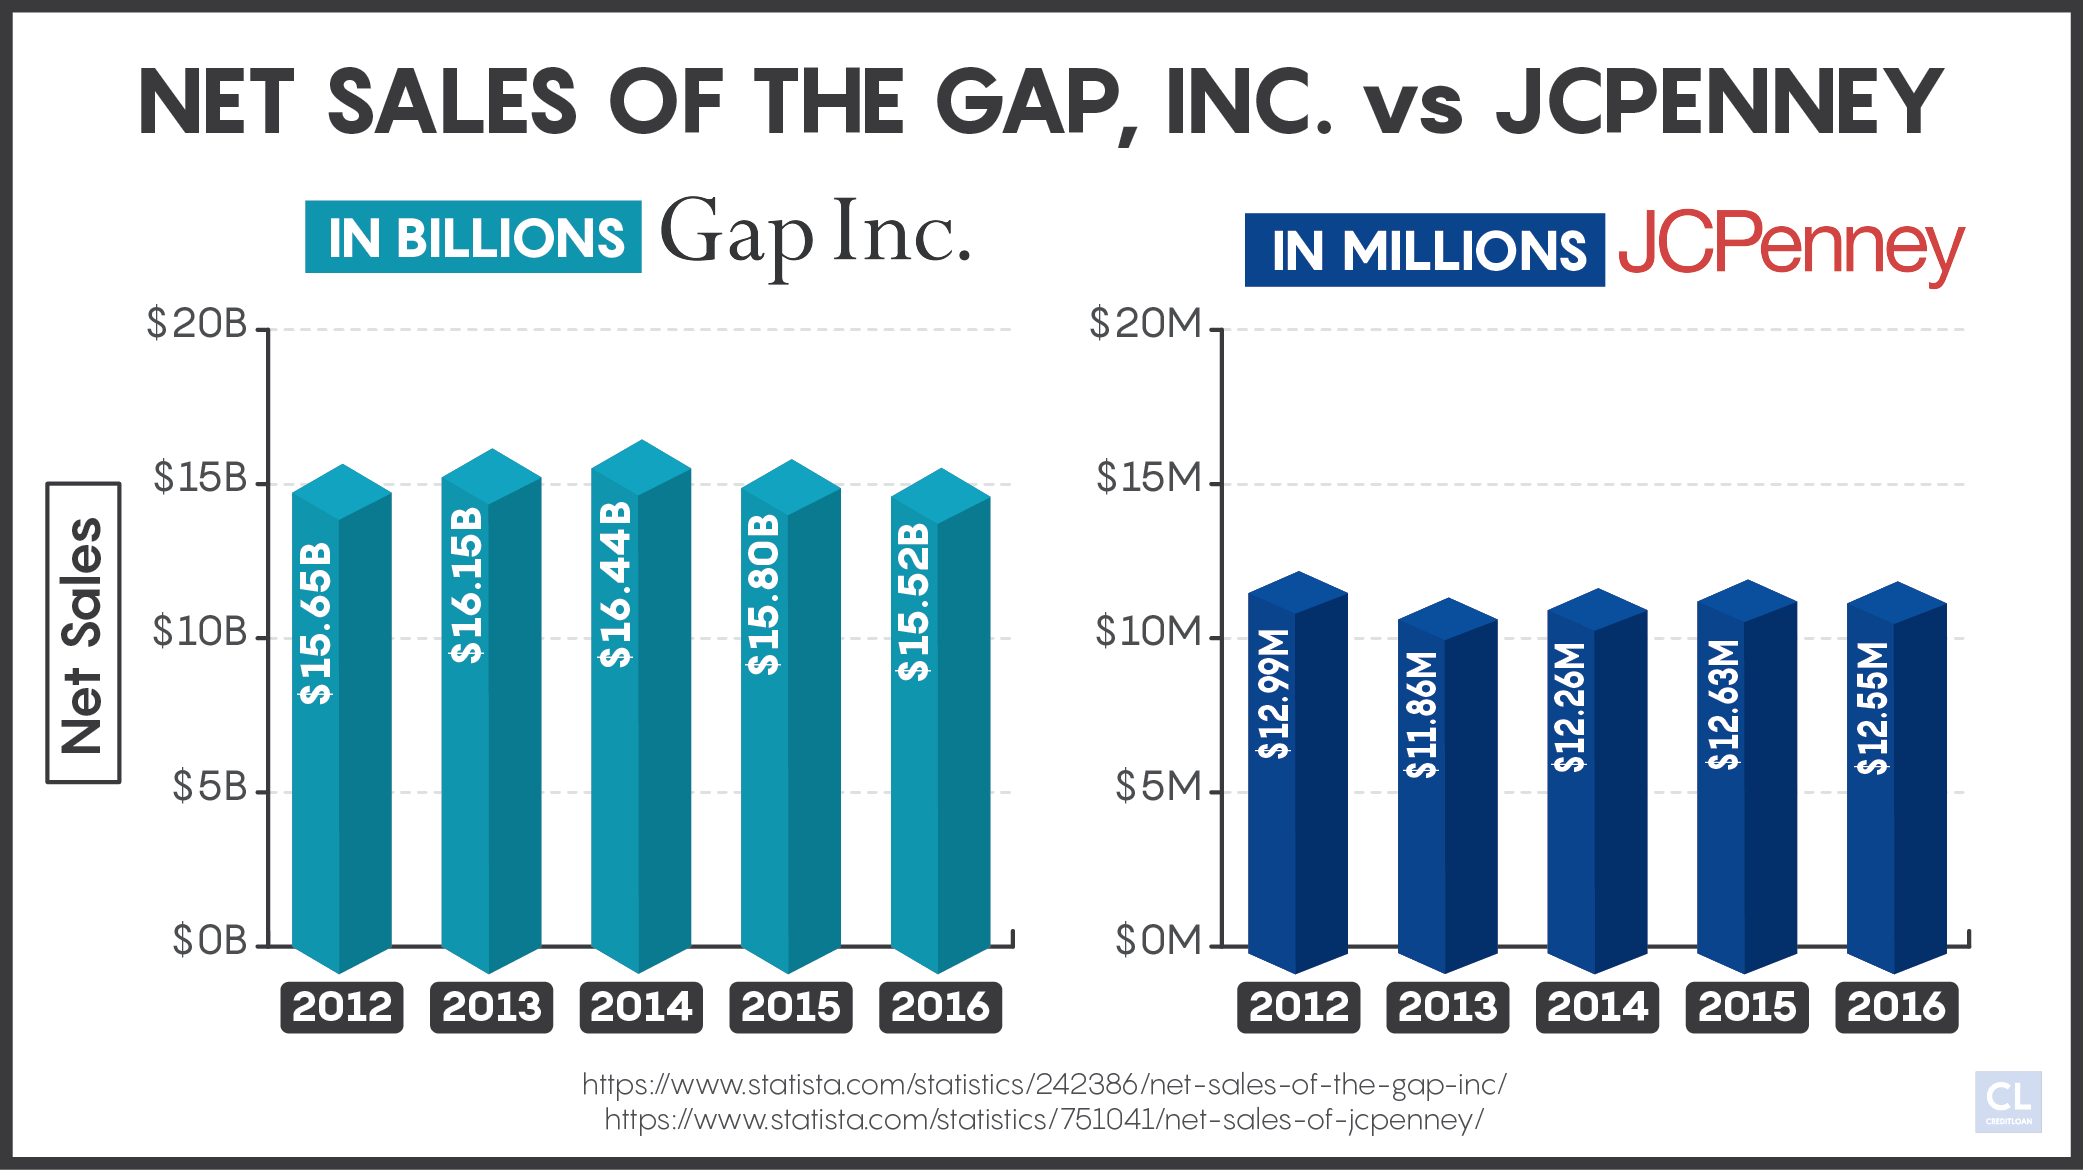 Net Sales of The Gap, Inc. and JCPenney 2012-2016